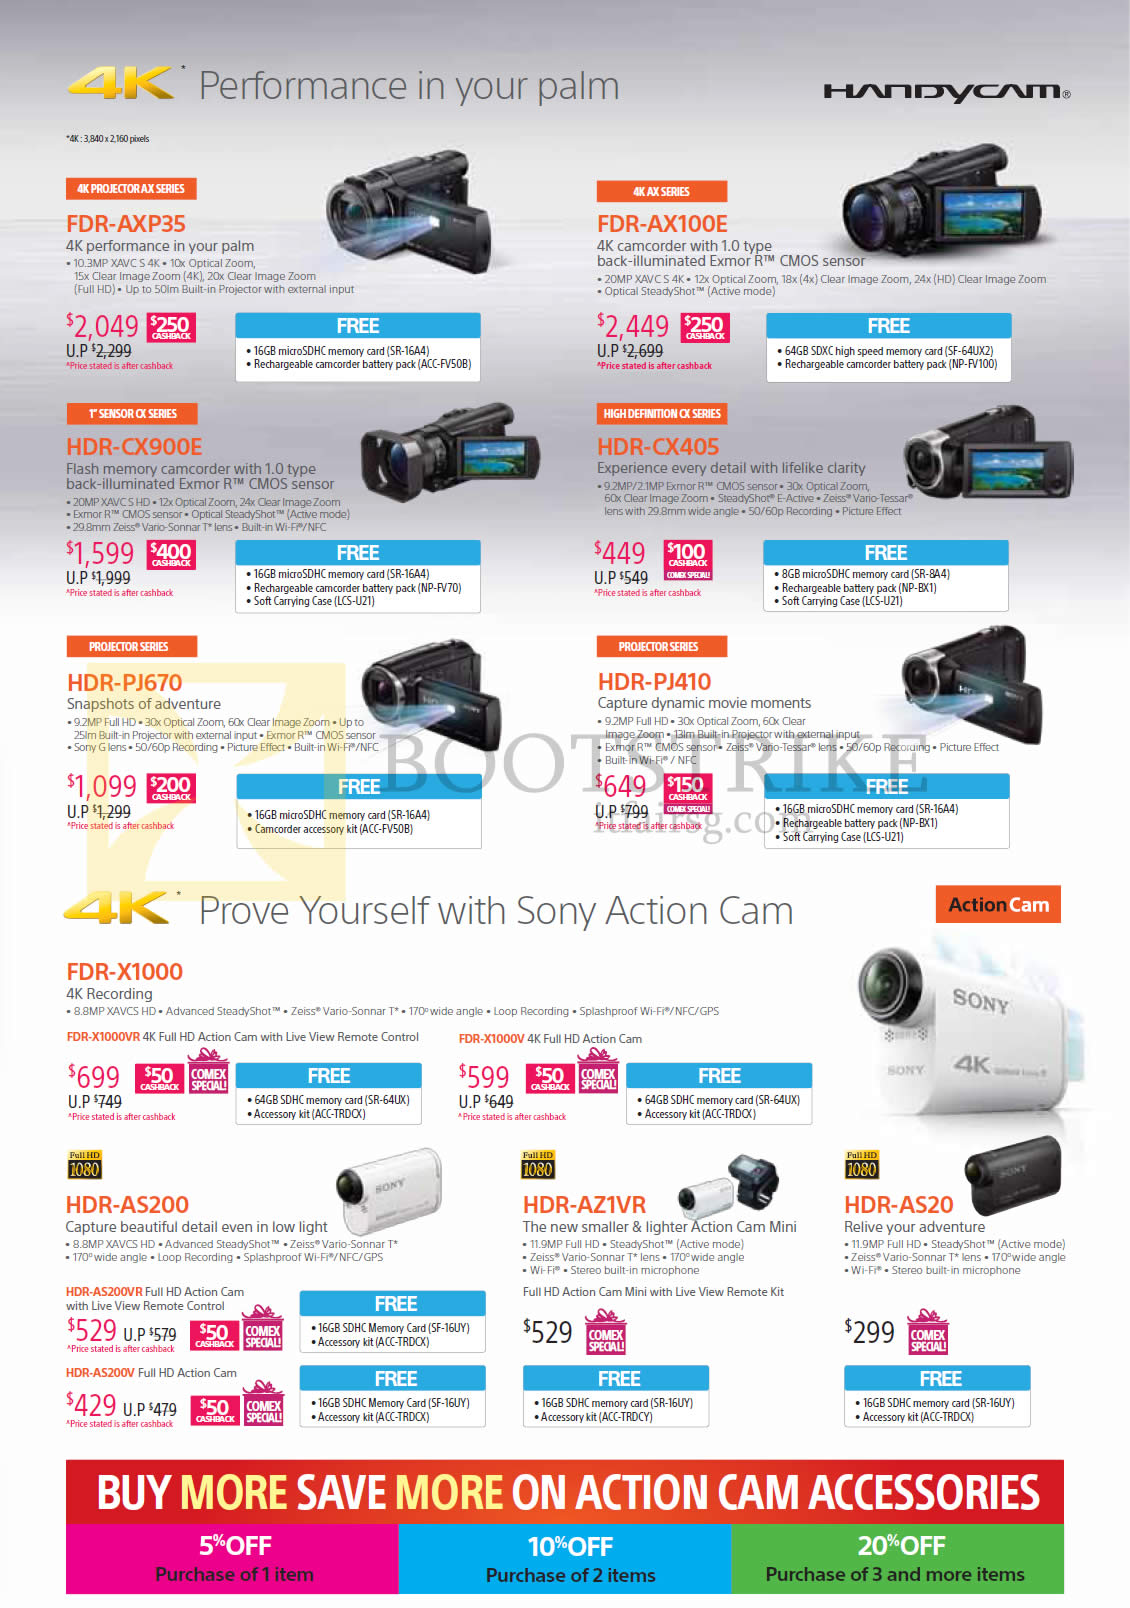 Sony Camcorders Handycam Video FDR-AXP35, AX100E, CX-900E, CX405, PJ670, PJ410, X1000, AS200, AZ1VR, AS20